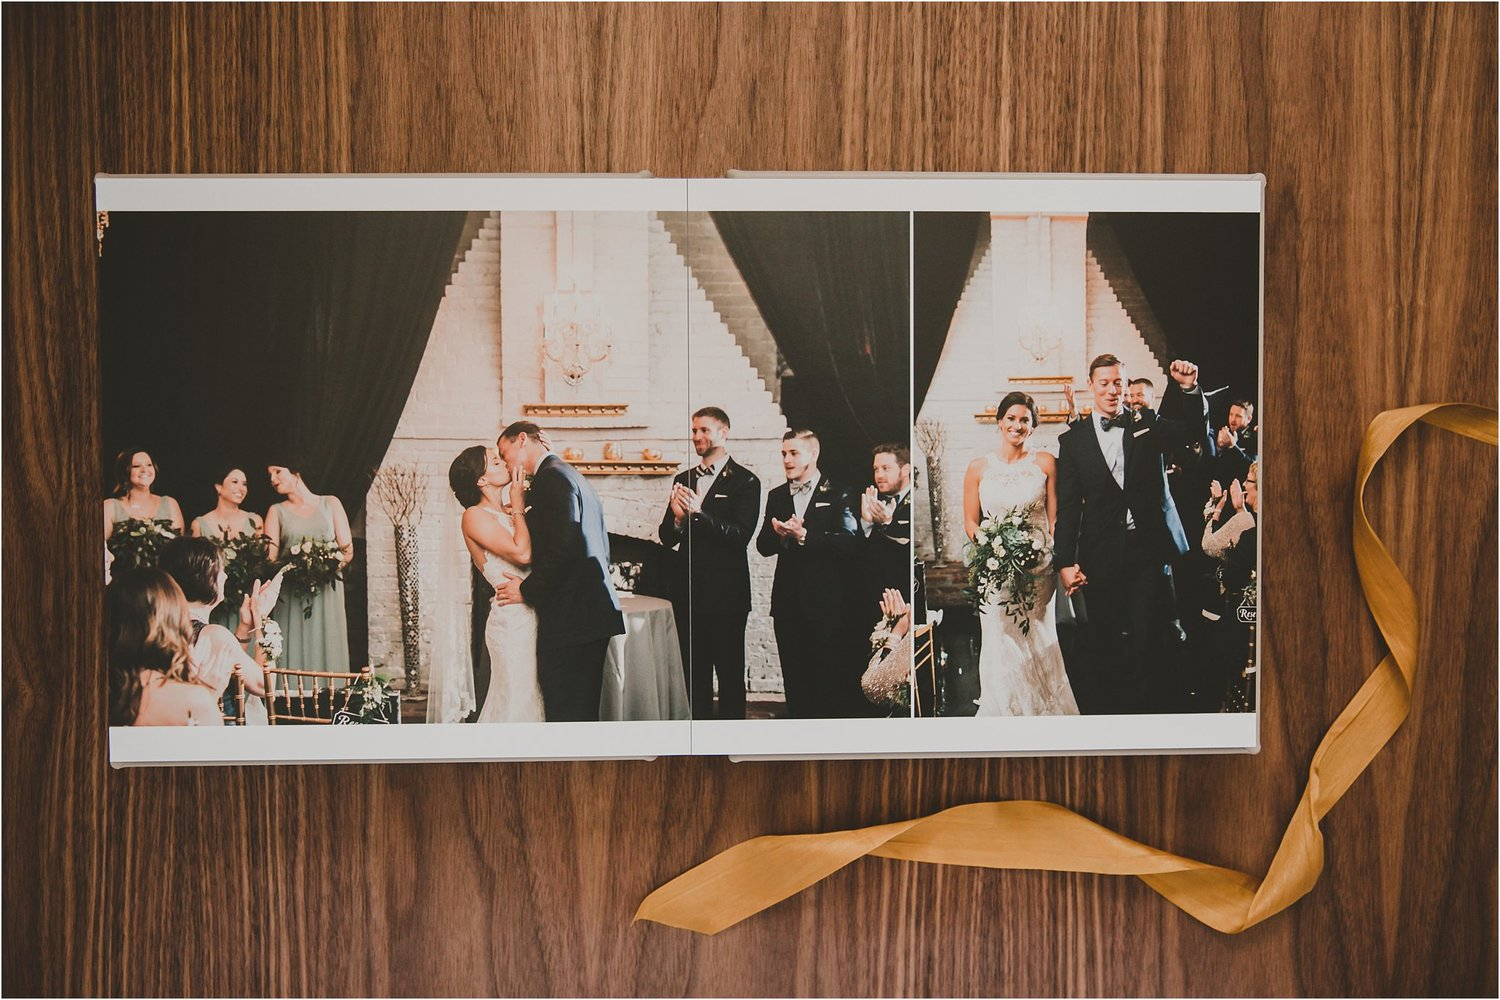 Heirloom products alyssa taylors custom wedding album heirloom products alyssa taylors custom wedding album richmond virginia photographer pattengale photography jeuxipadfo Gallery